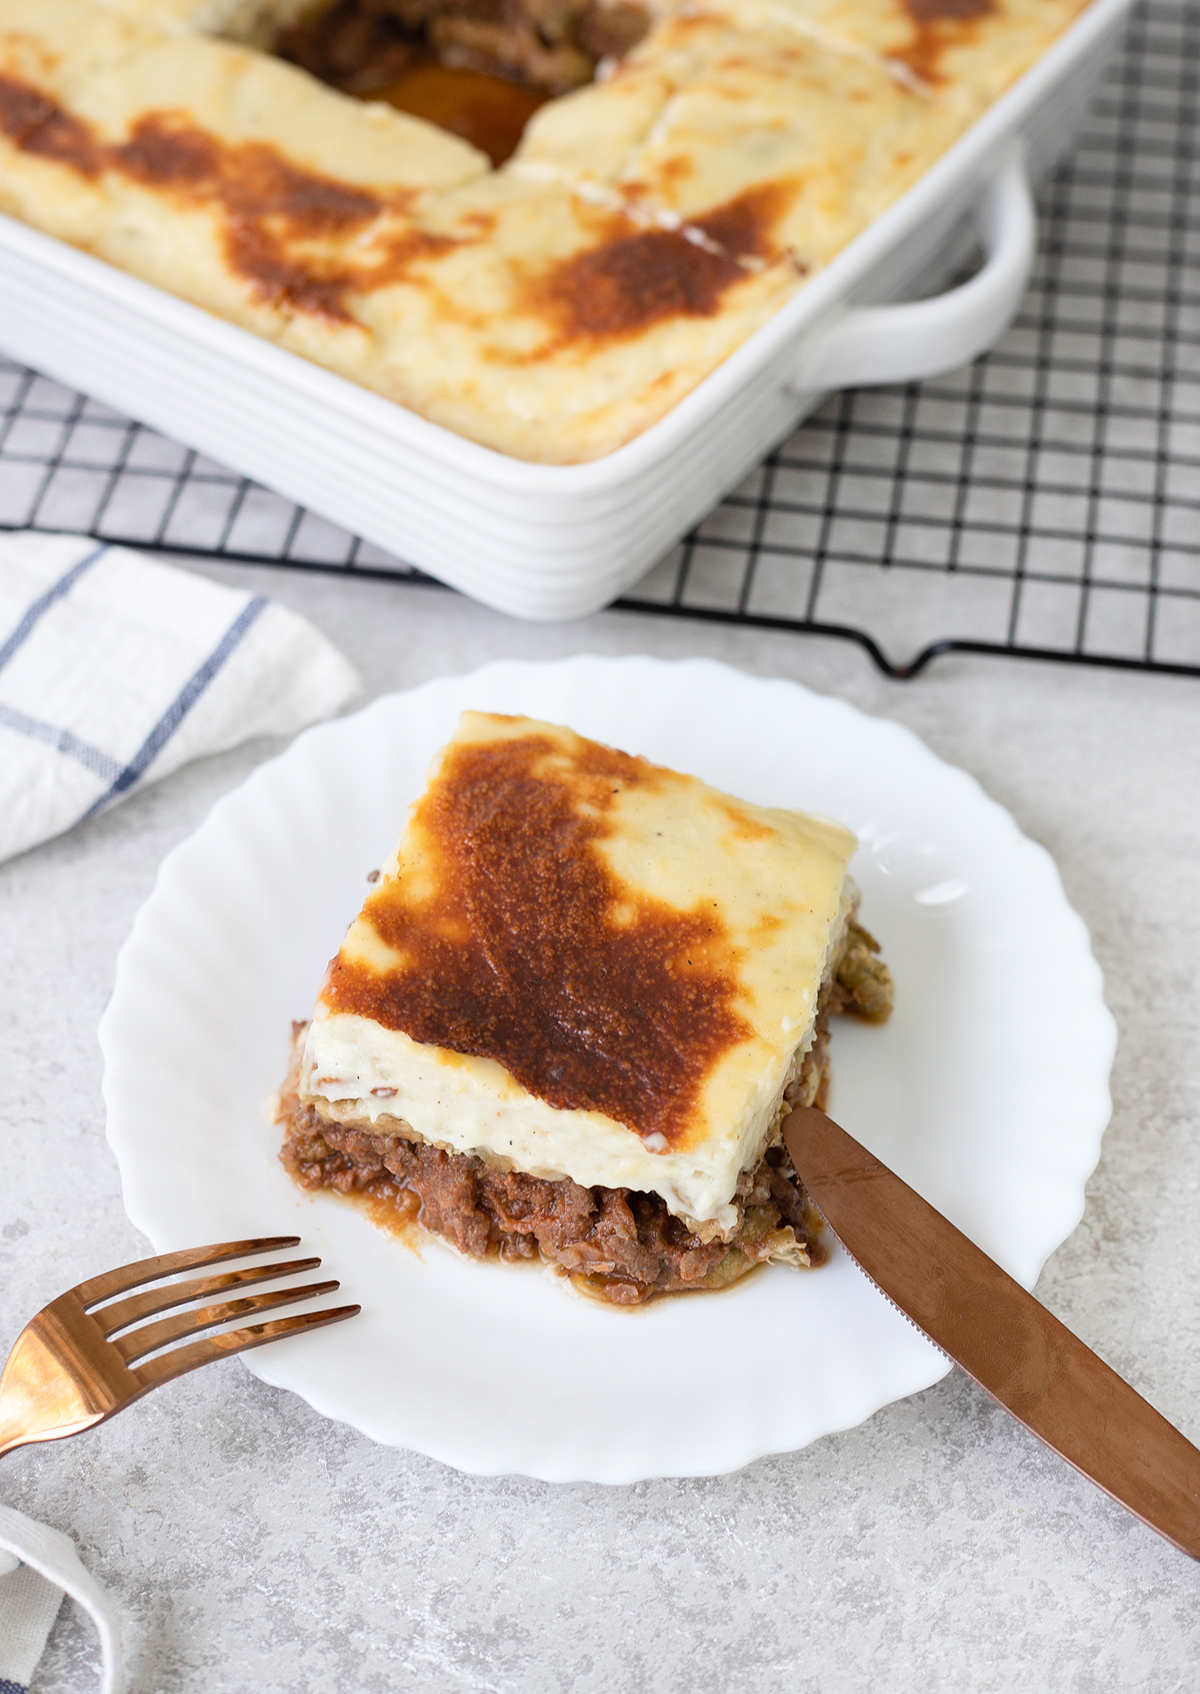 Moussaka or Musaka is a delicious main dish